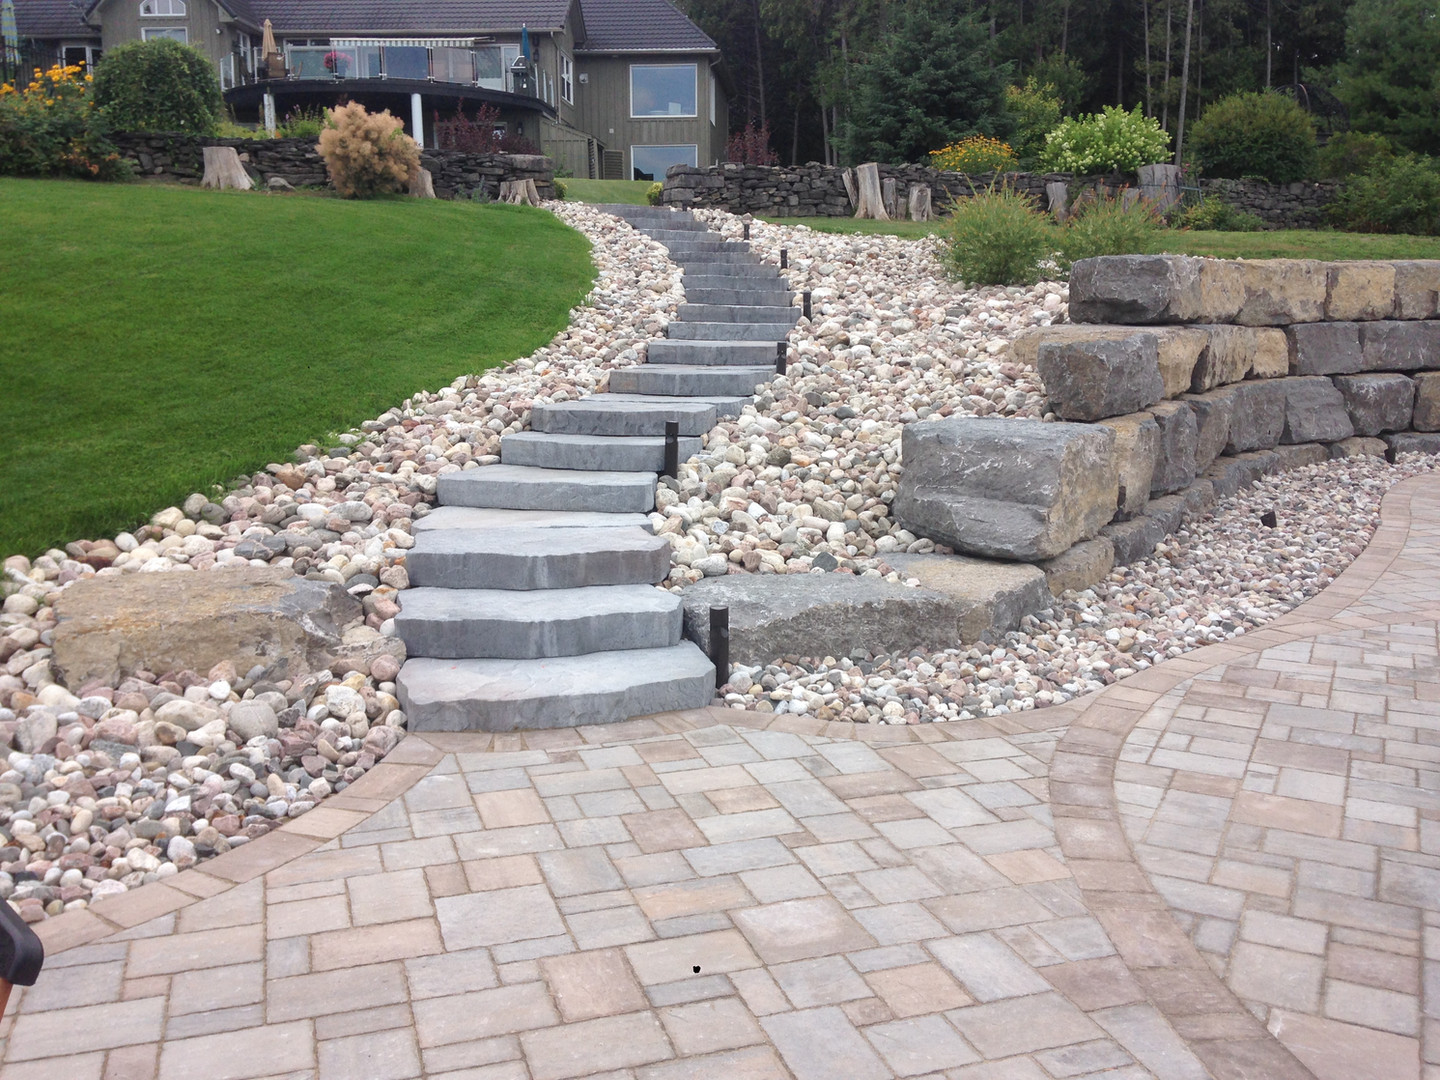 Armour stone wall, Stone steps, Rock garden